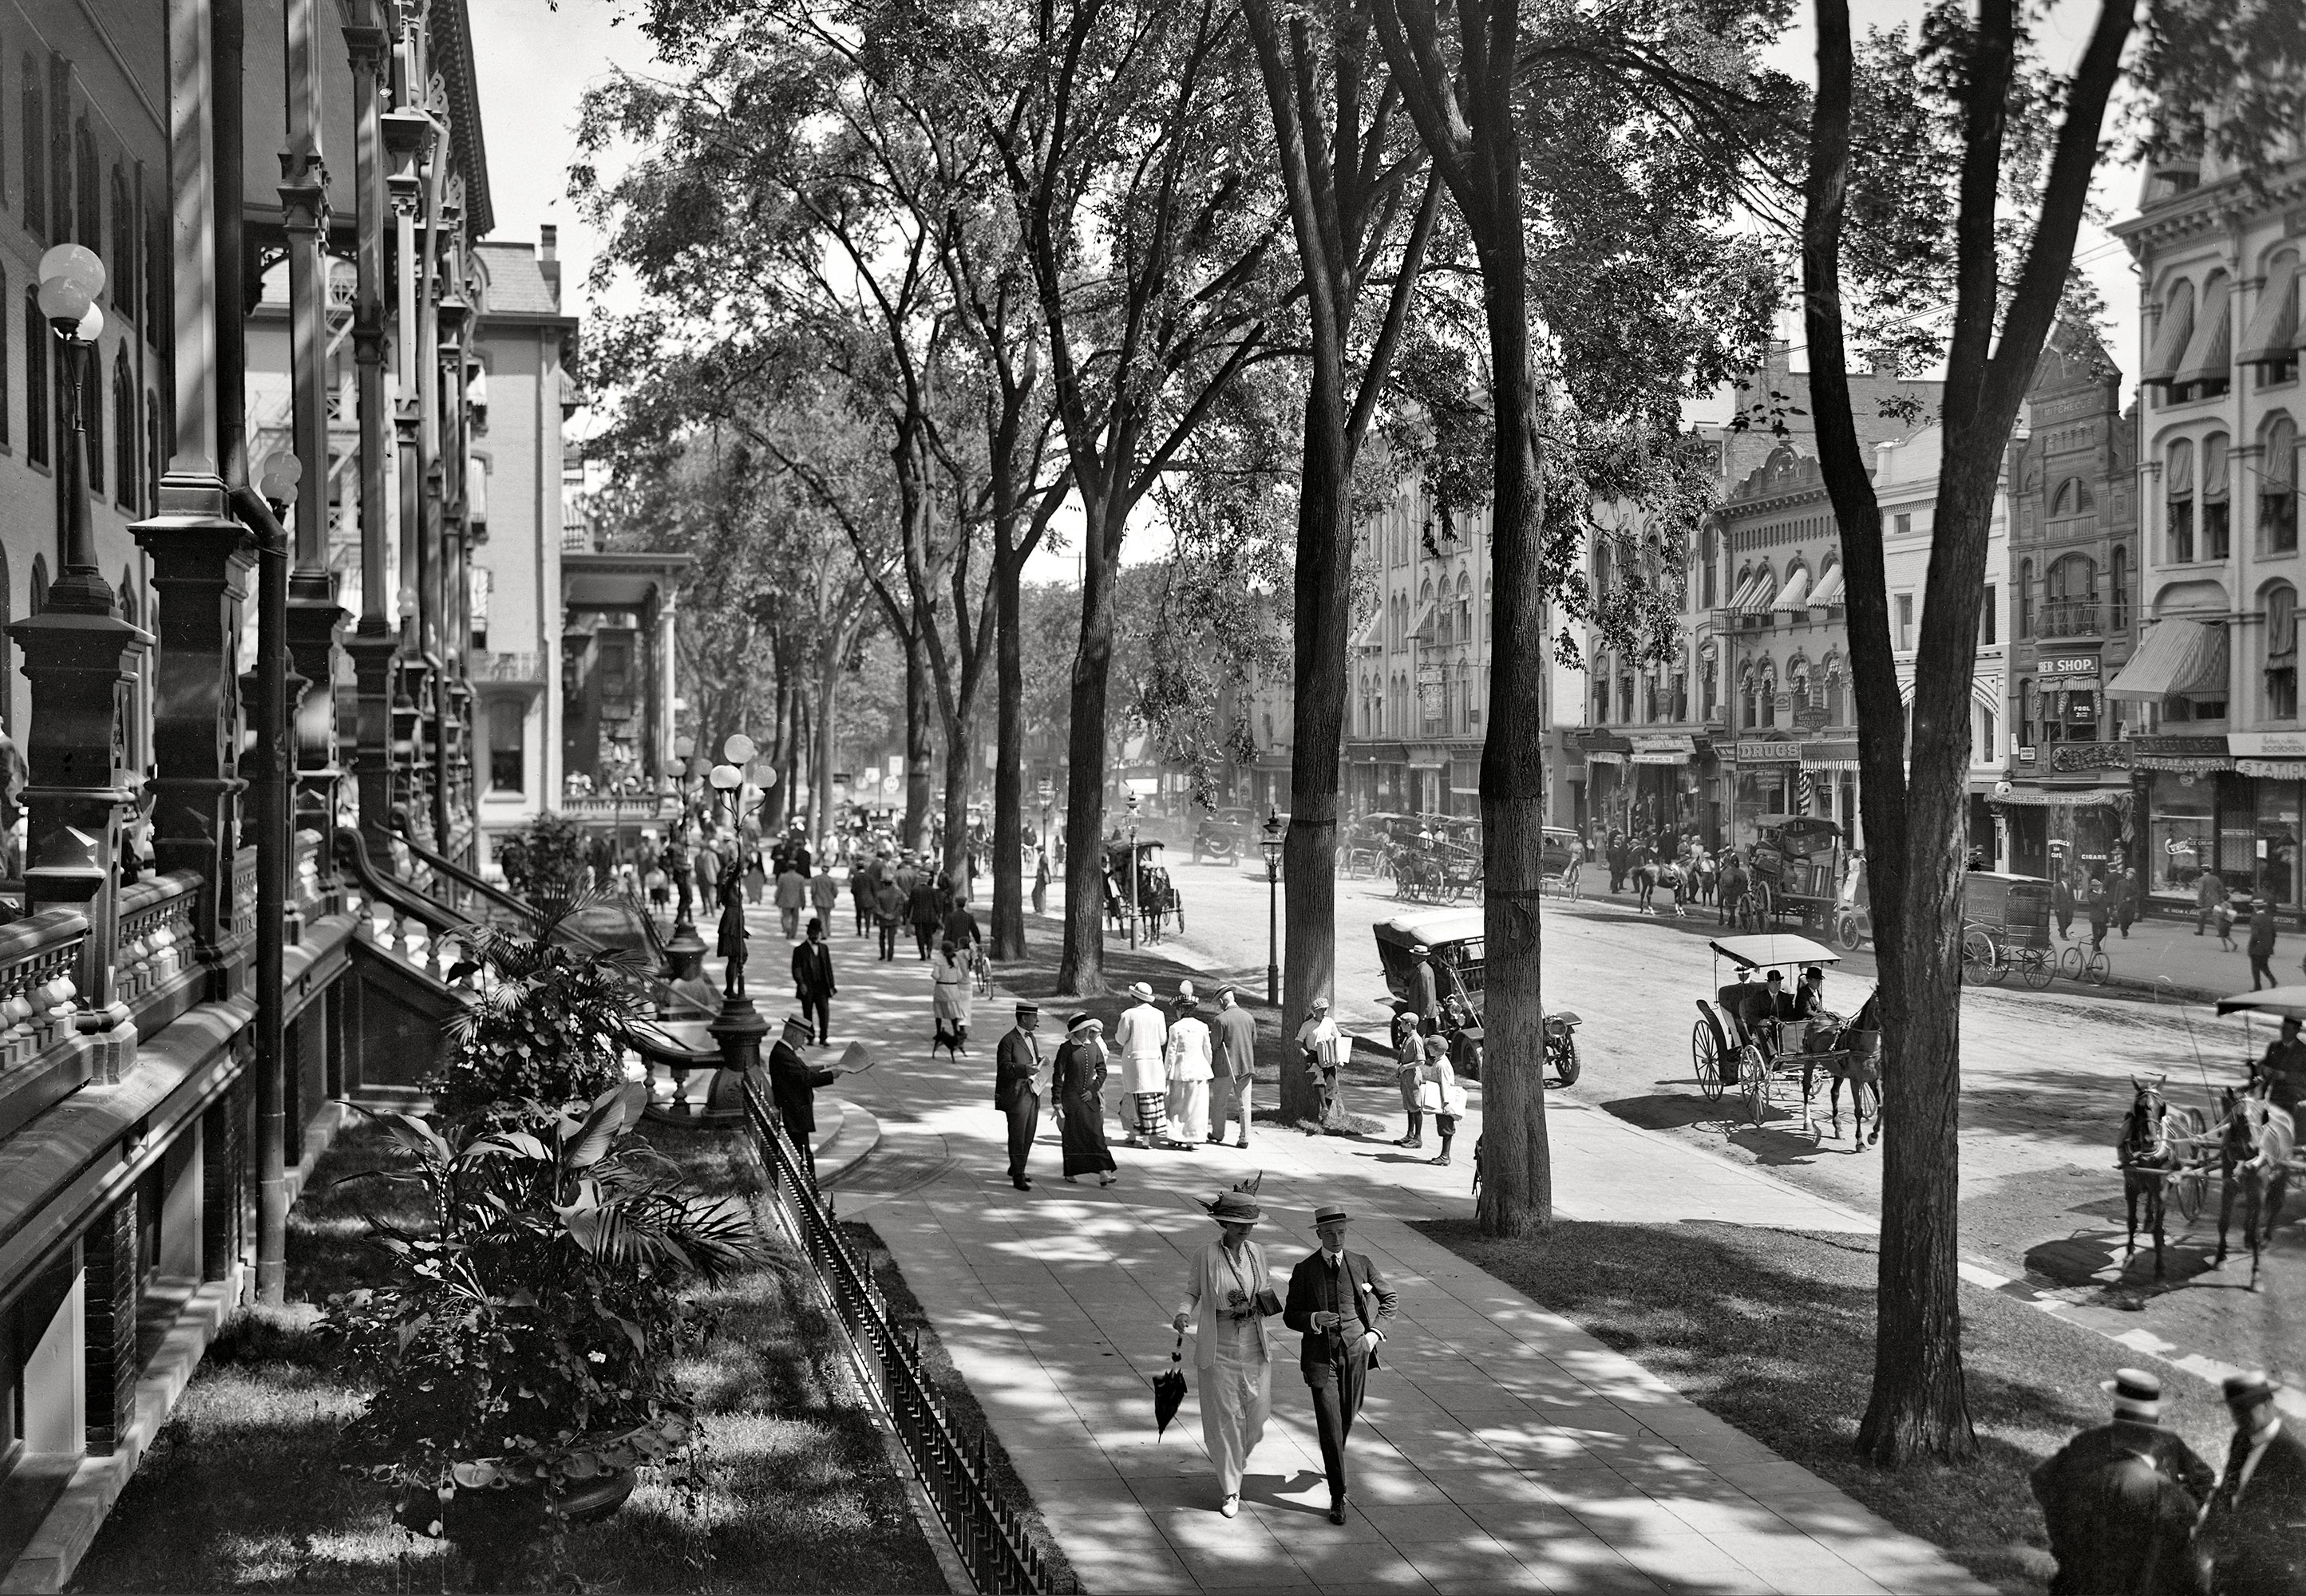 Saratoga Springs, New York, circa 1915.  Broadway at the United States Hotel.  Looking more than a little like one of those idealized Disney  Main Streets.